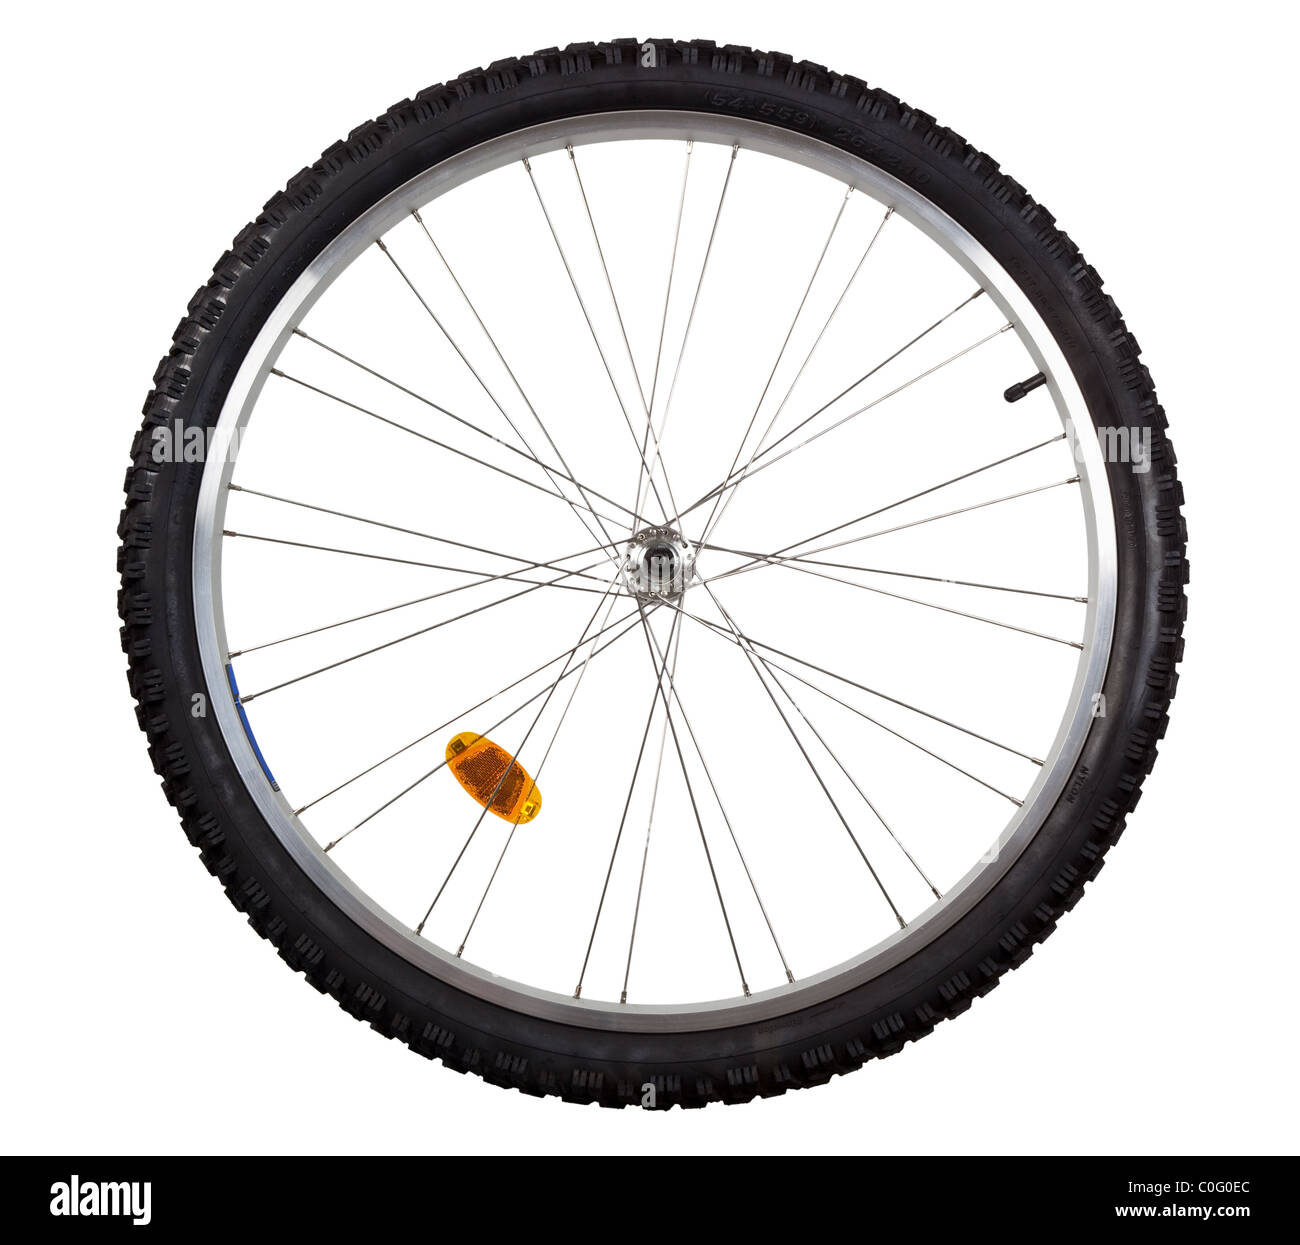 Front wheel of a mountain bike isolated on white background - Stock Image